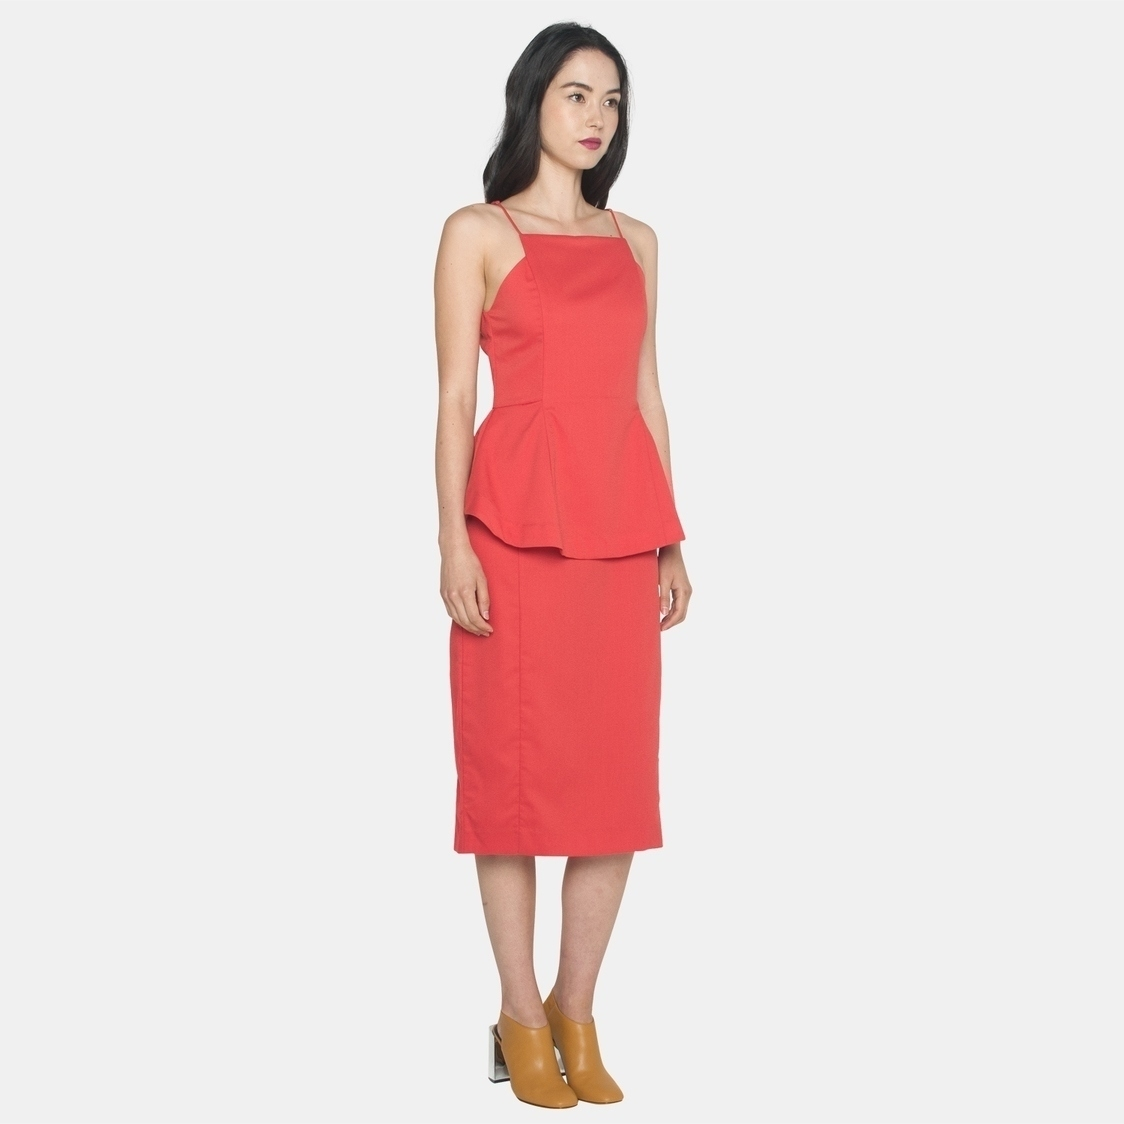 Ellysage Peplum Cami Pencil Dress in Coral